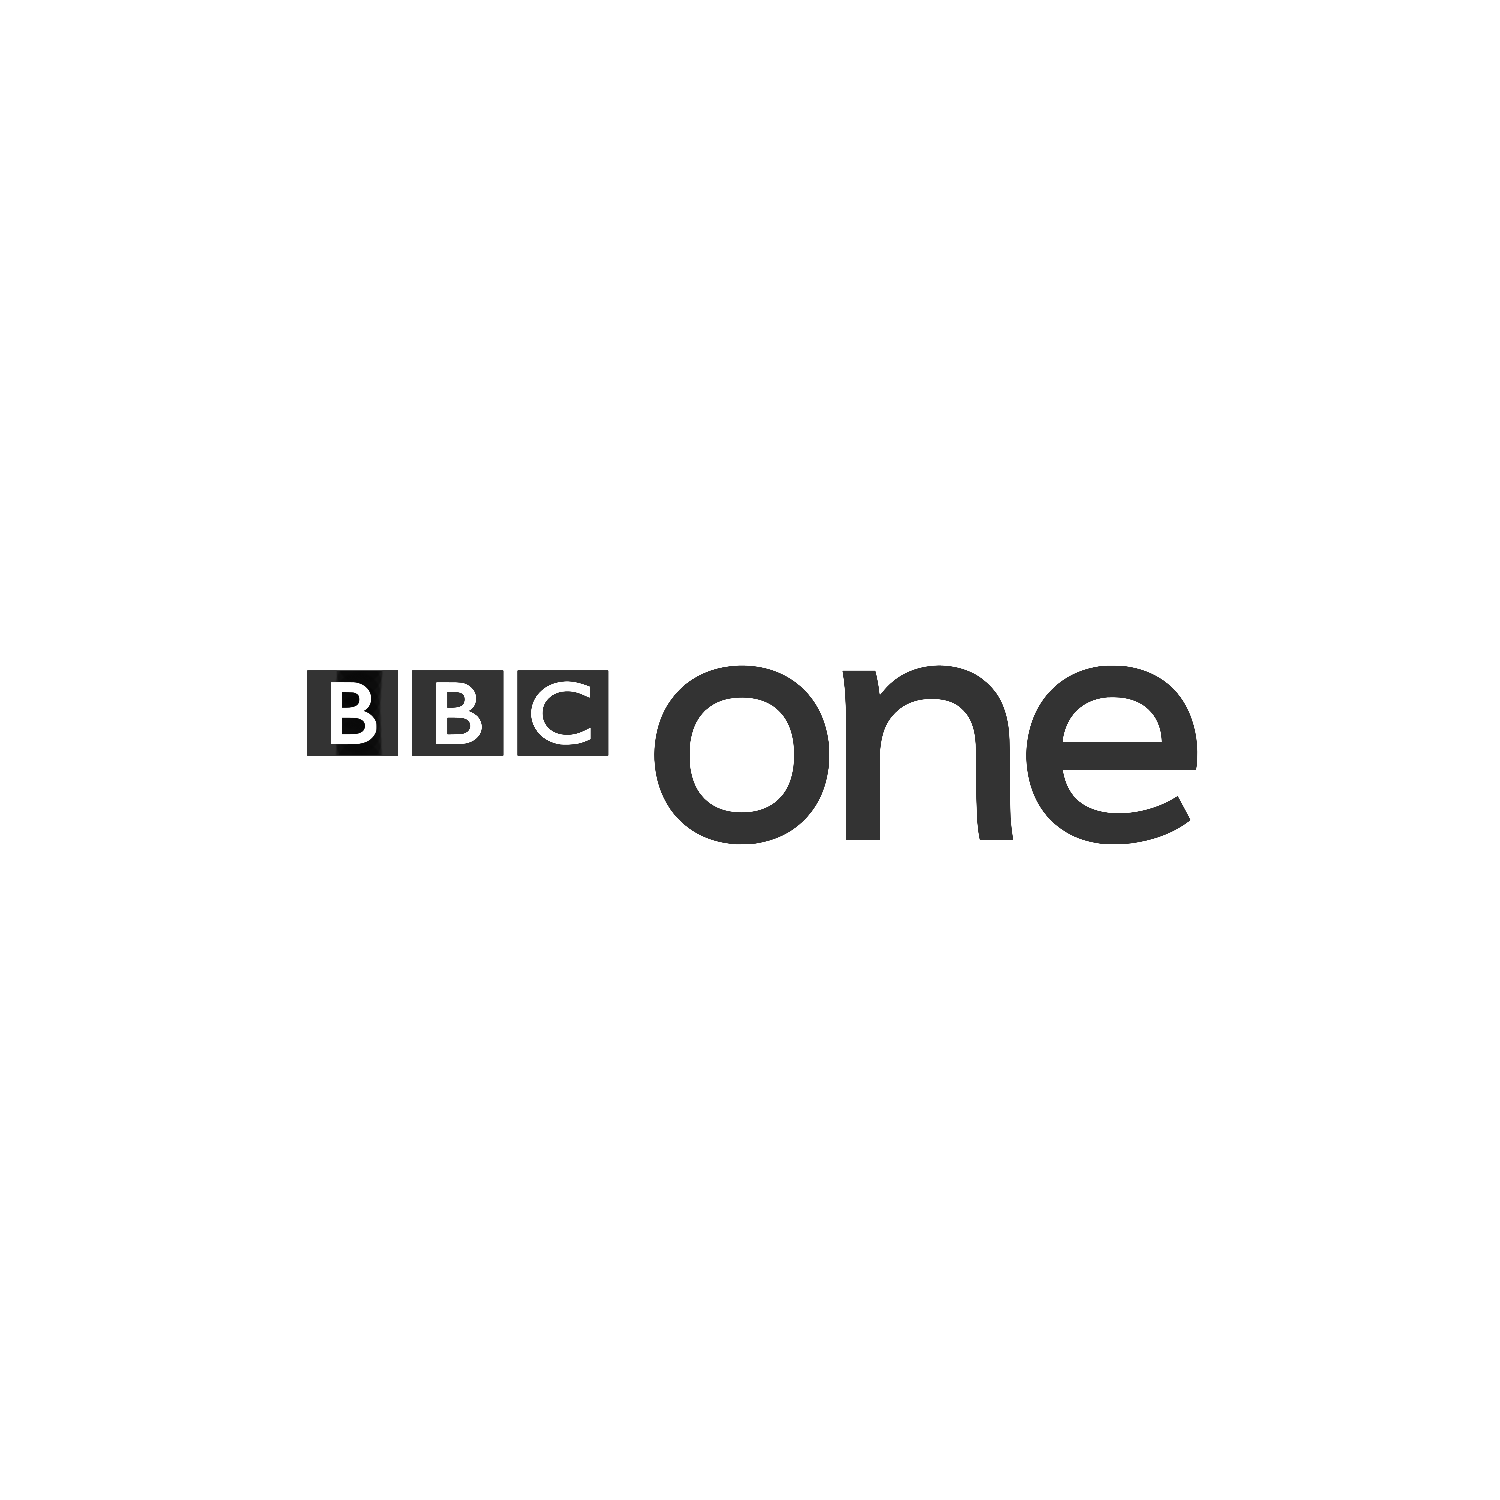 BBCOne.png